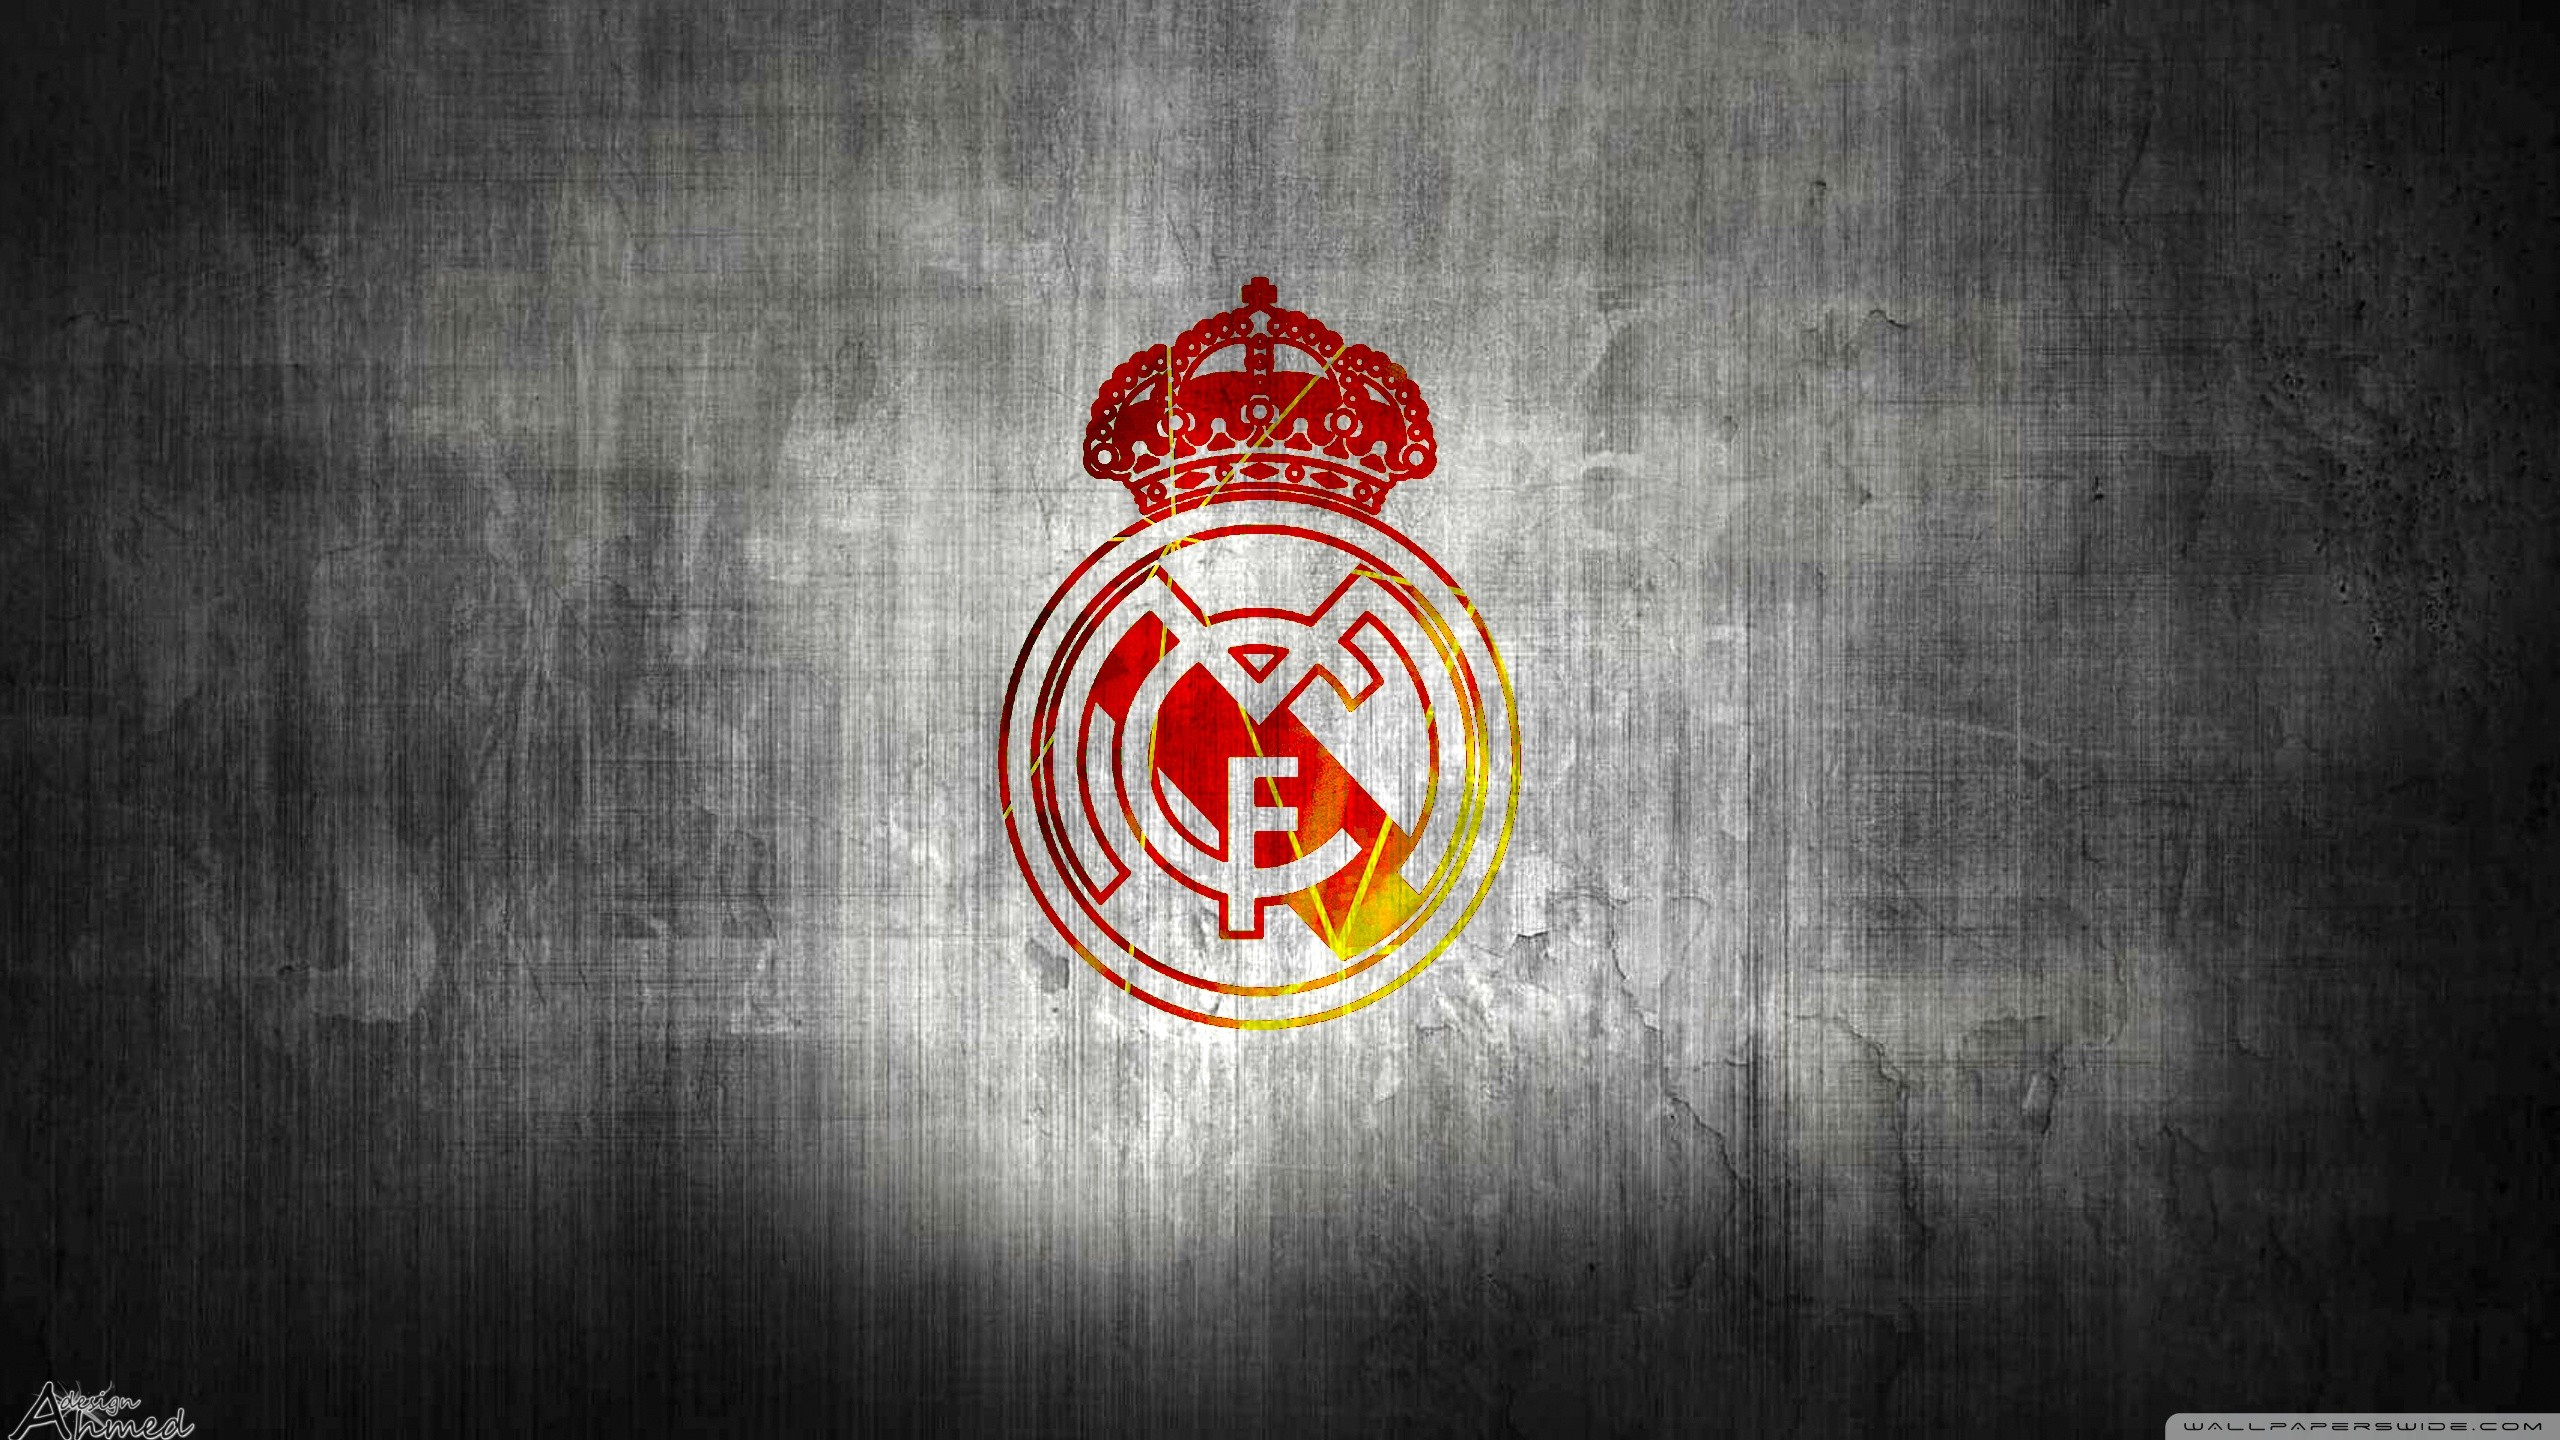 Real Madrid Wallpaper Full HD 2018 72 images 2560x1440